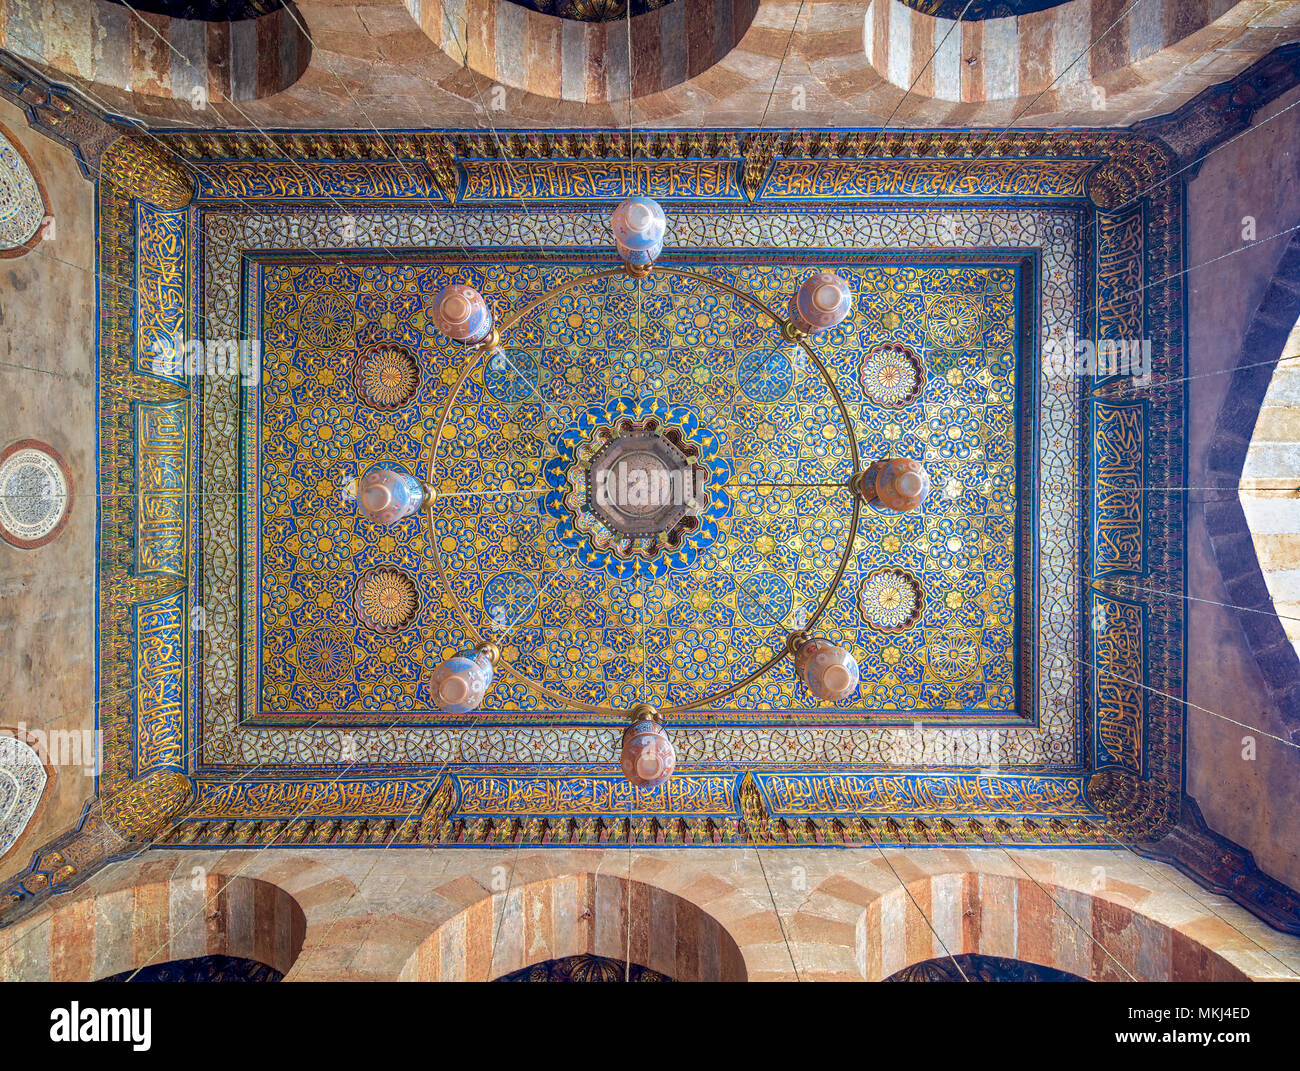 Ornate ceiling with blue and golden floral pattern decorations at Sultan Barquq mosque, Al Moez Street, Cairo, Egypt - Stock Image